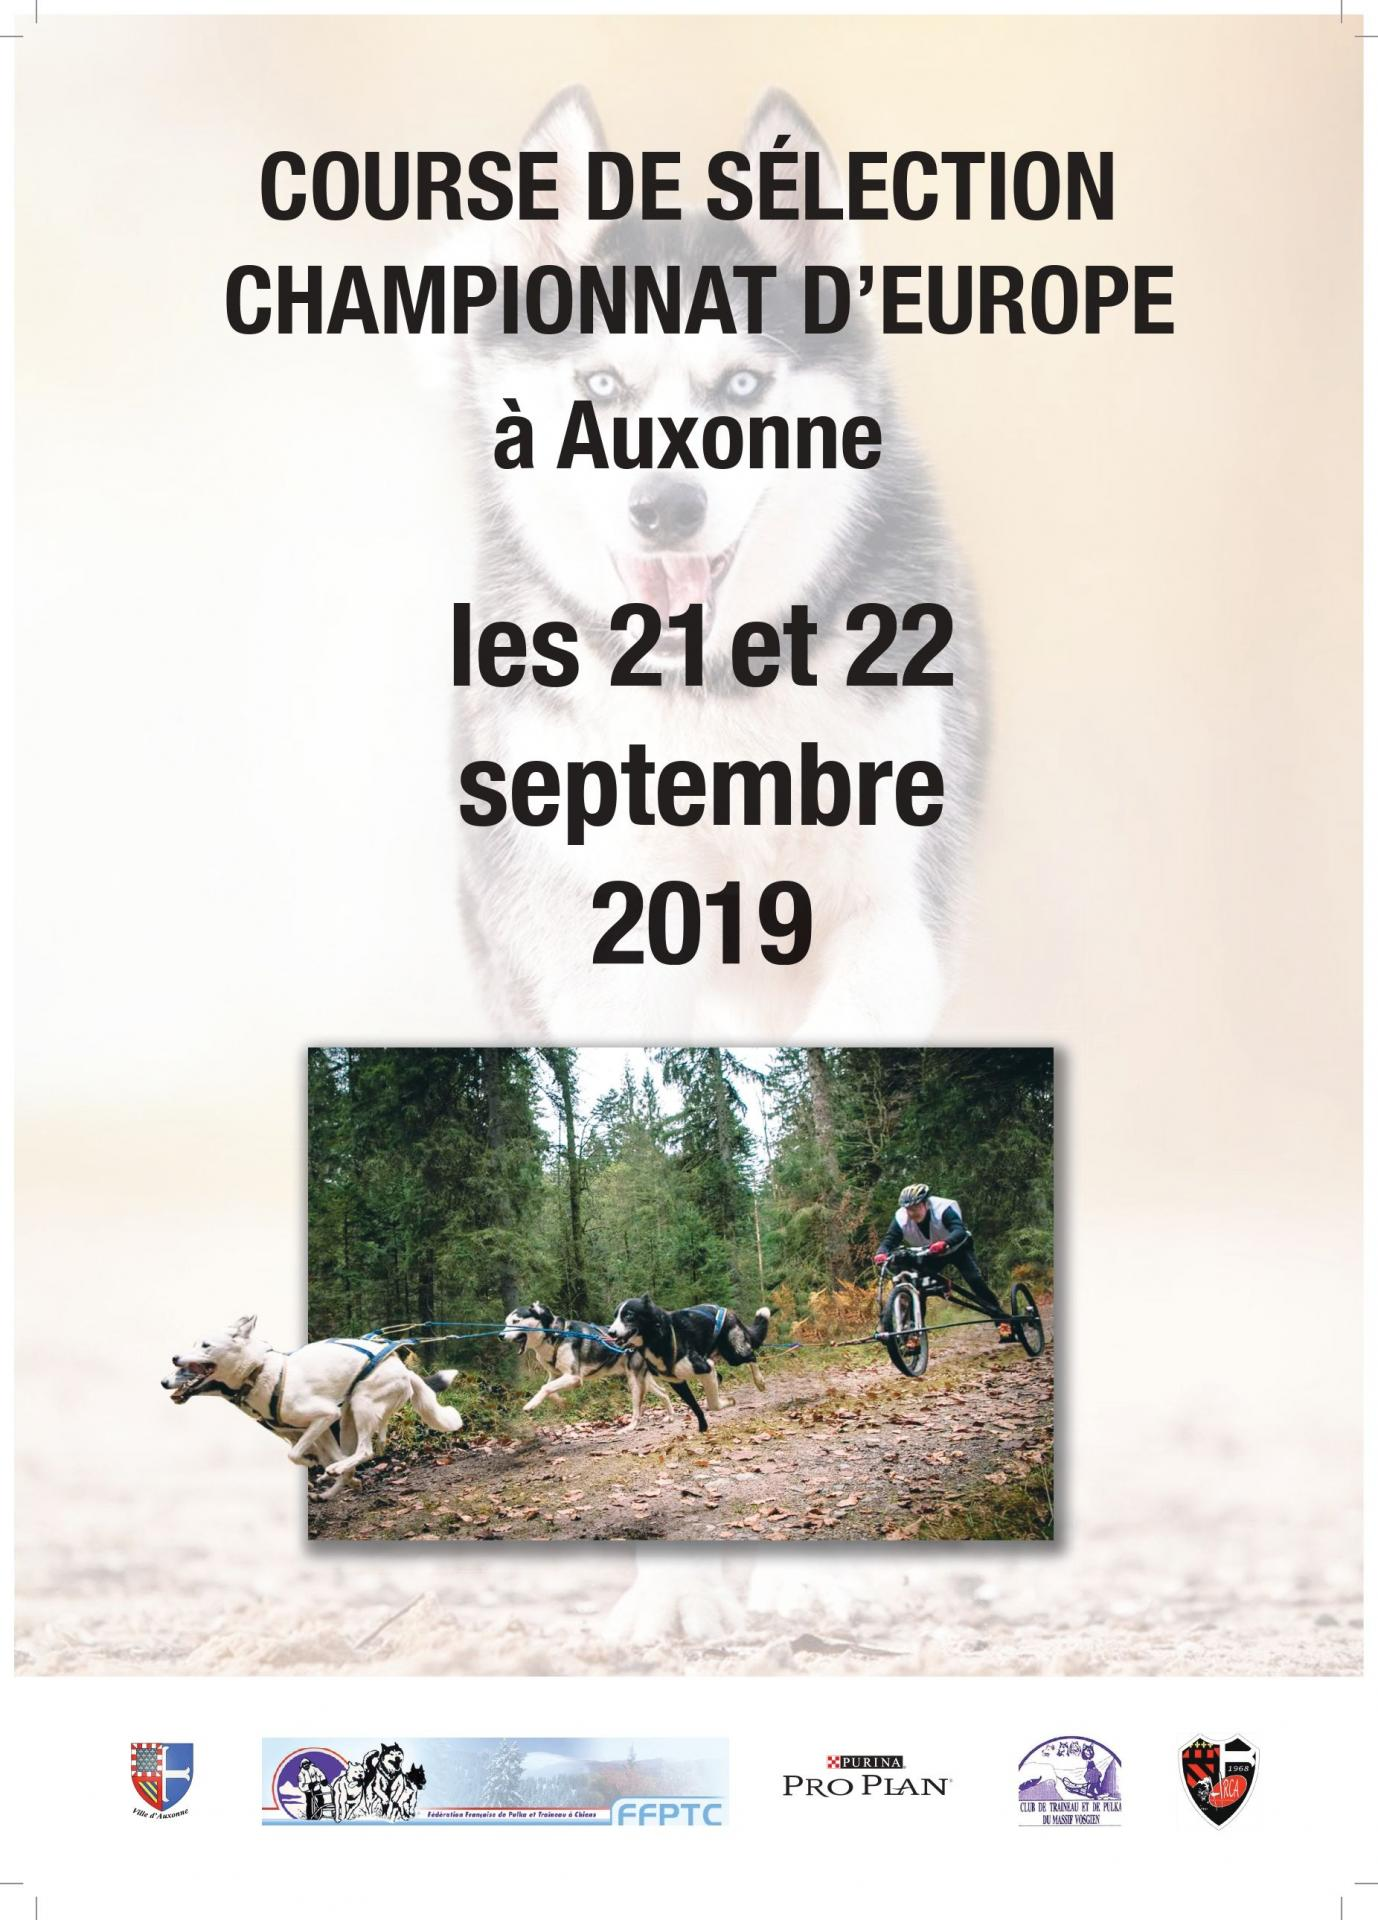 Piece jointe bat hd vg affiche auxonne 21 21 septembre 2019 page 0001 compressor